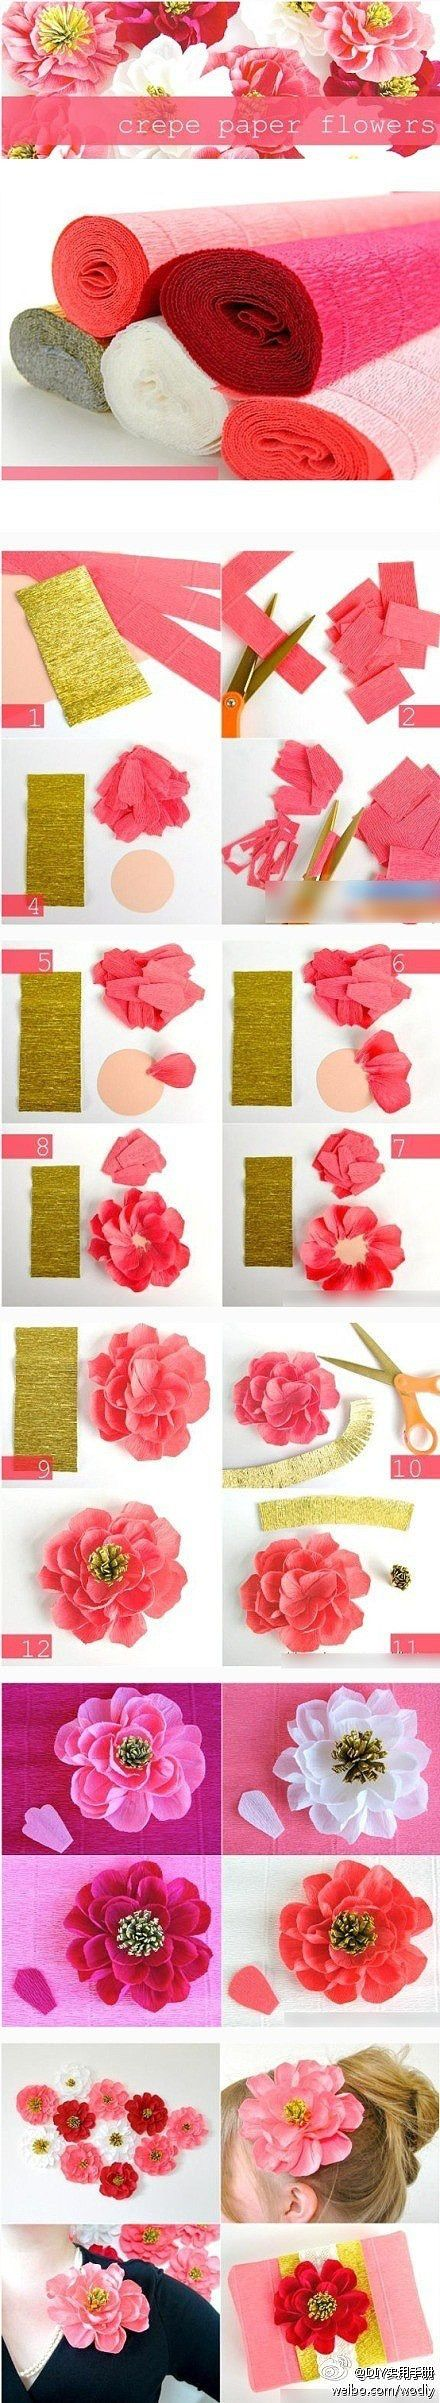 Inspirational Monday – Do it yourself (diy) Flower series – Crepe paper flower…